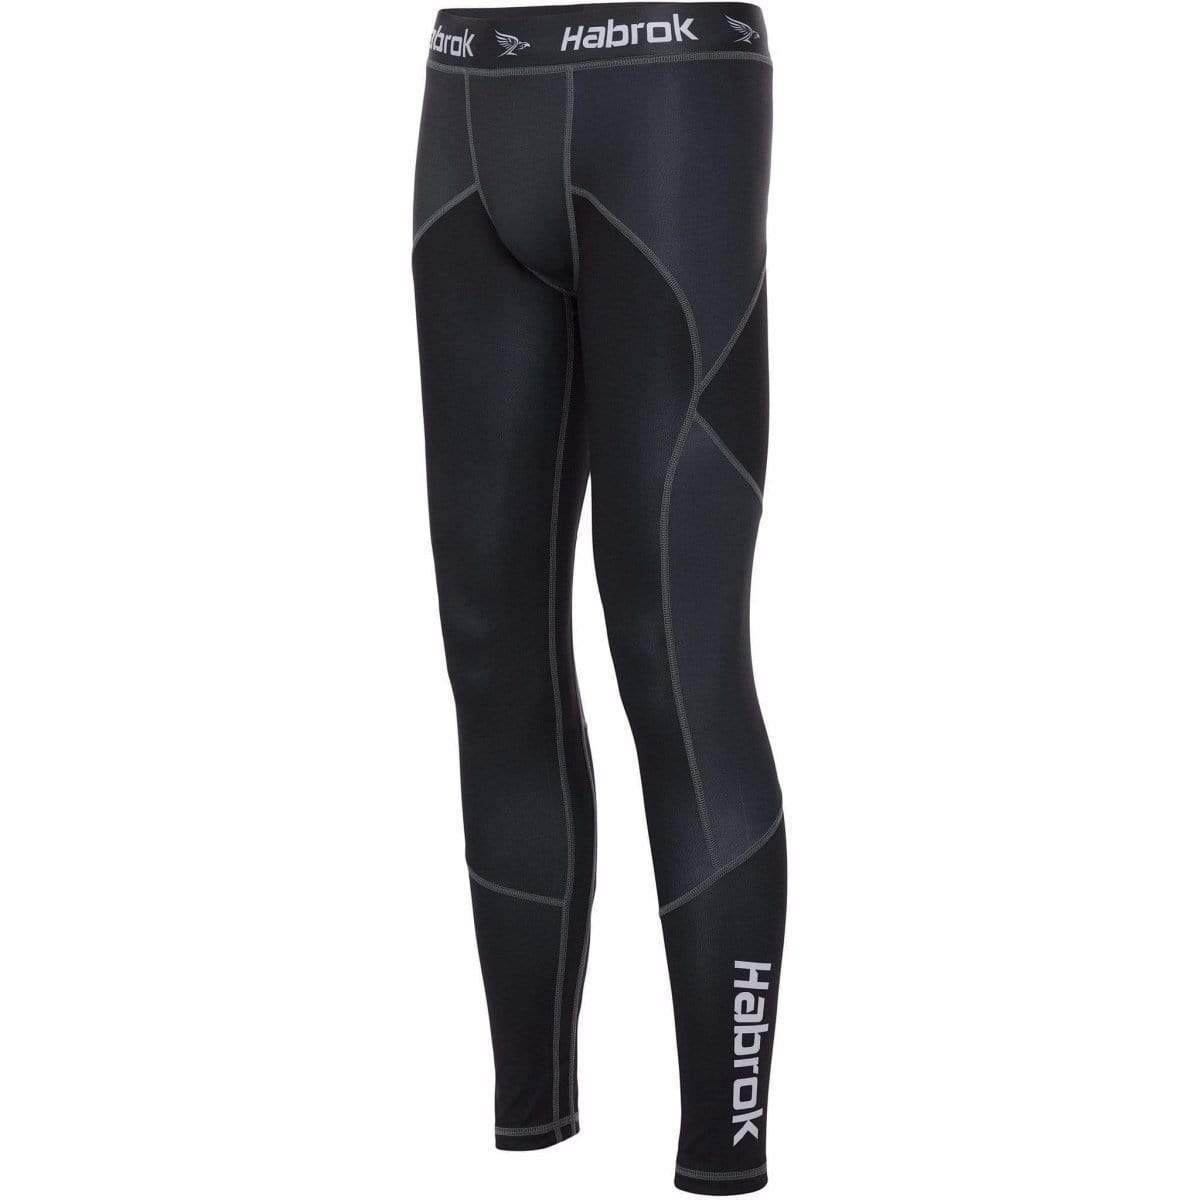 Habrok Spats S / BLACK Pugnator | Compression Pants | Men